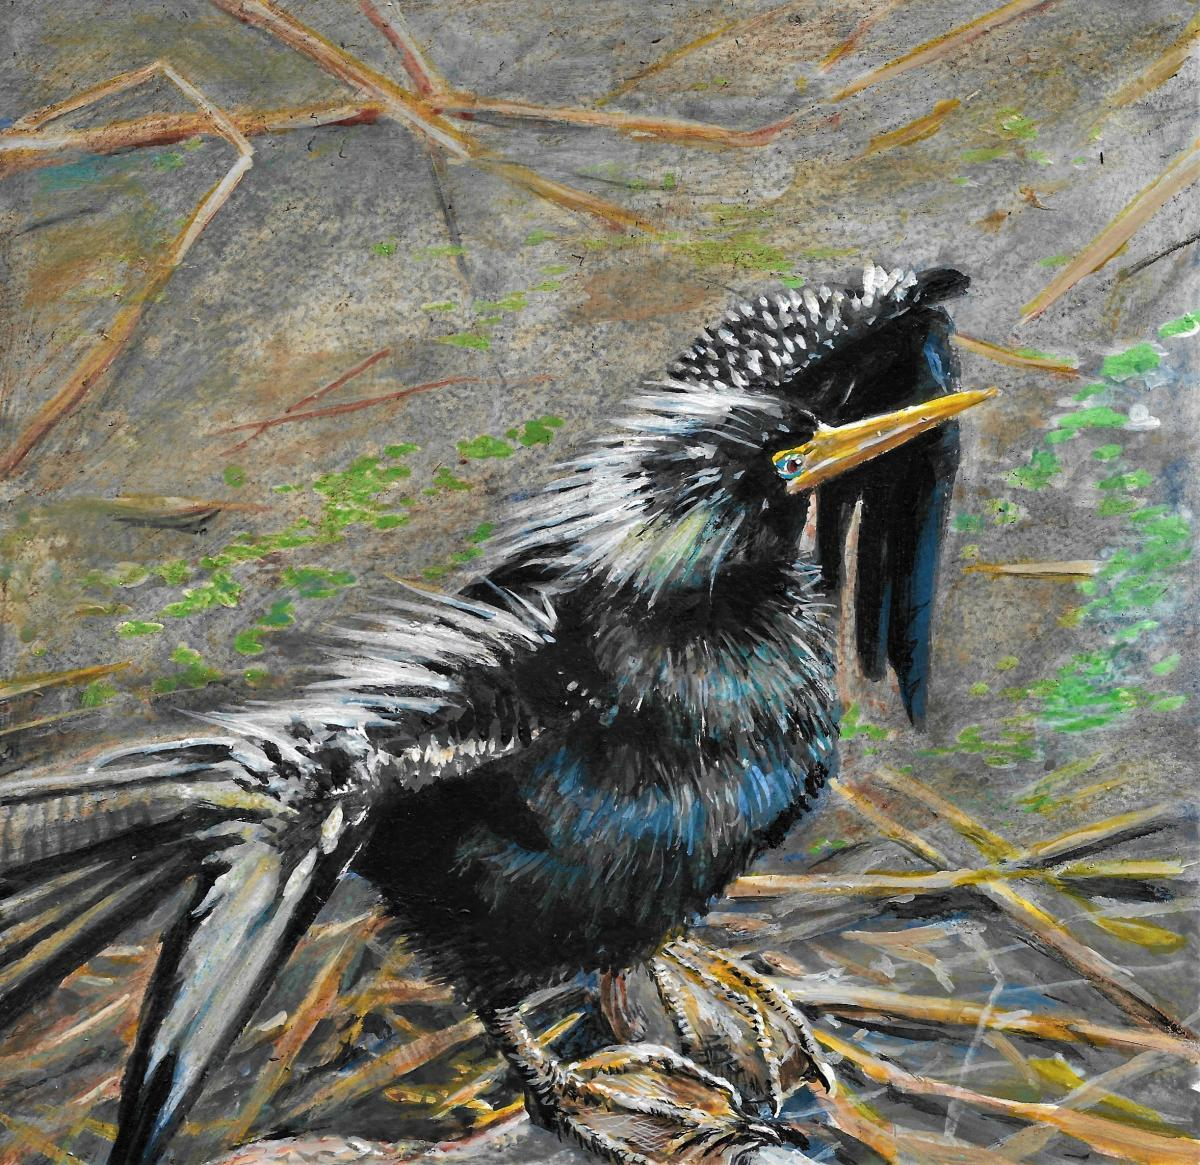 Add Artwork | Wallhanging by Wayne Chunat | Artists for Conservation